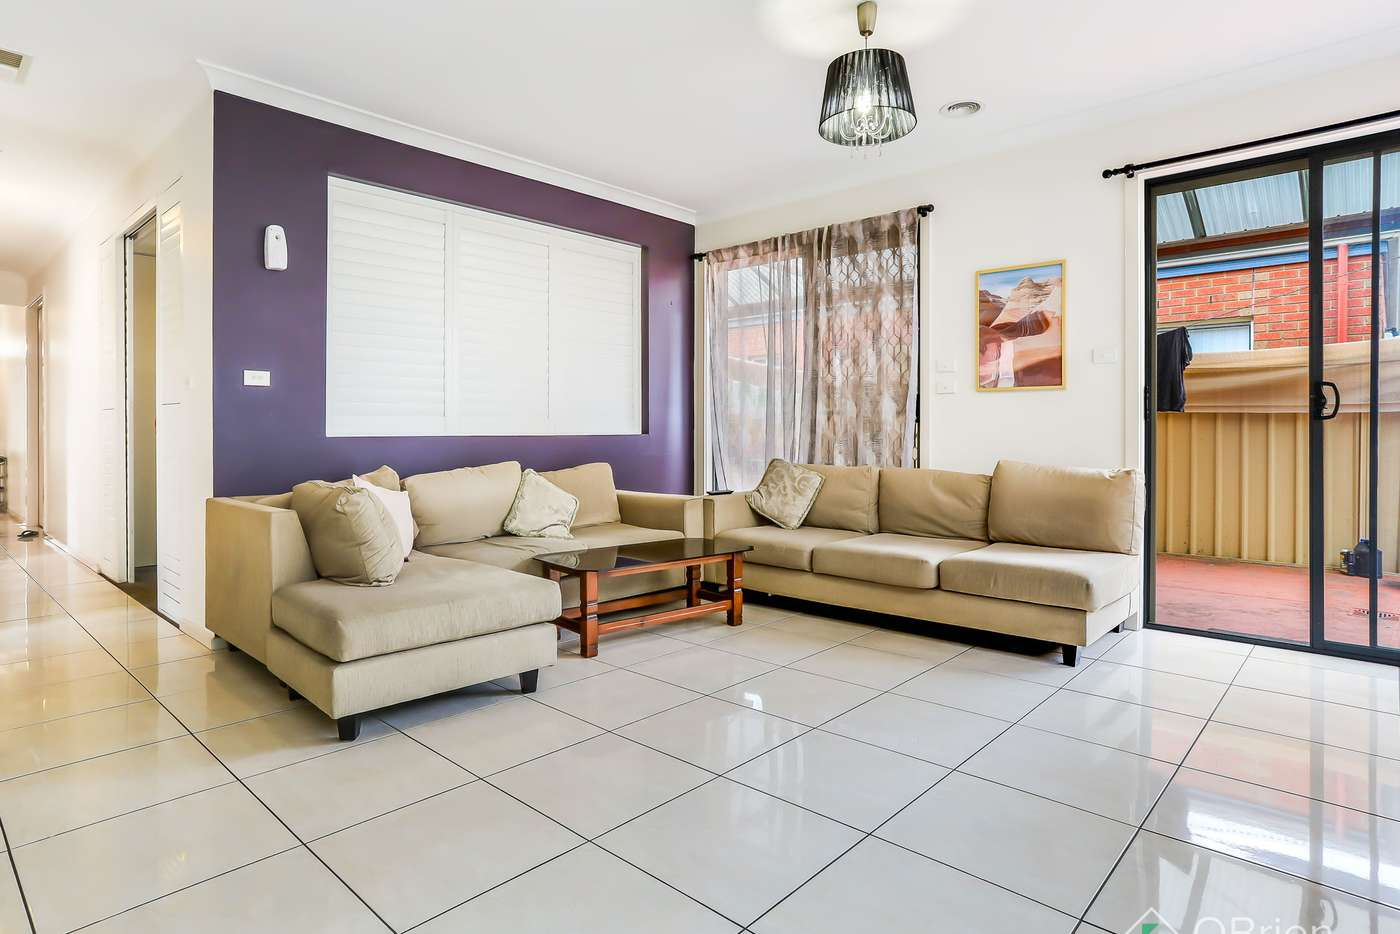 Sixth view of Homely house listing, 4 Studley Park Way, Caroline Springs VIC 3023